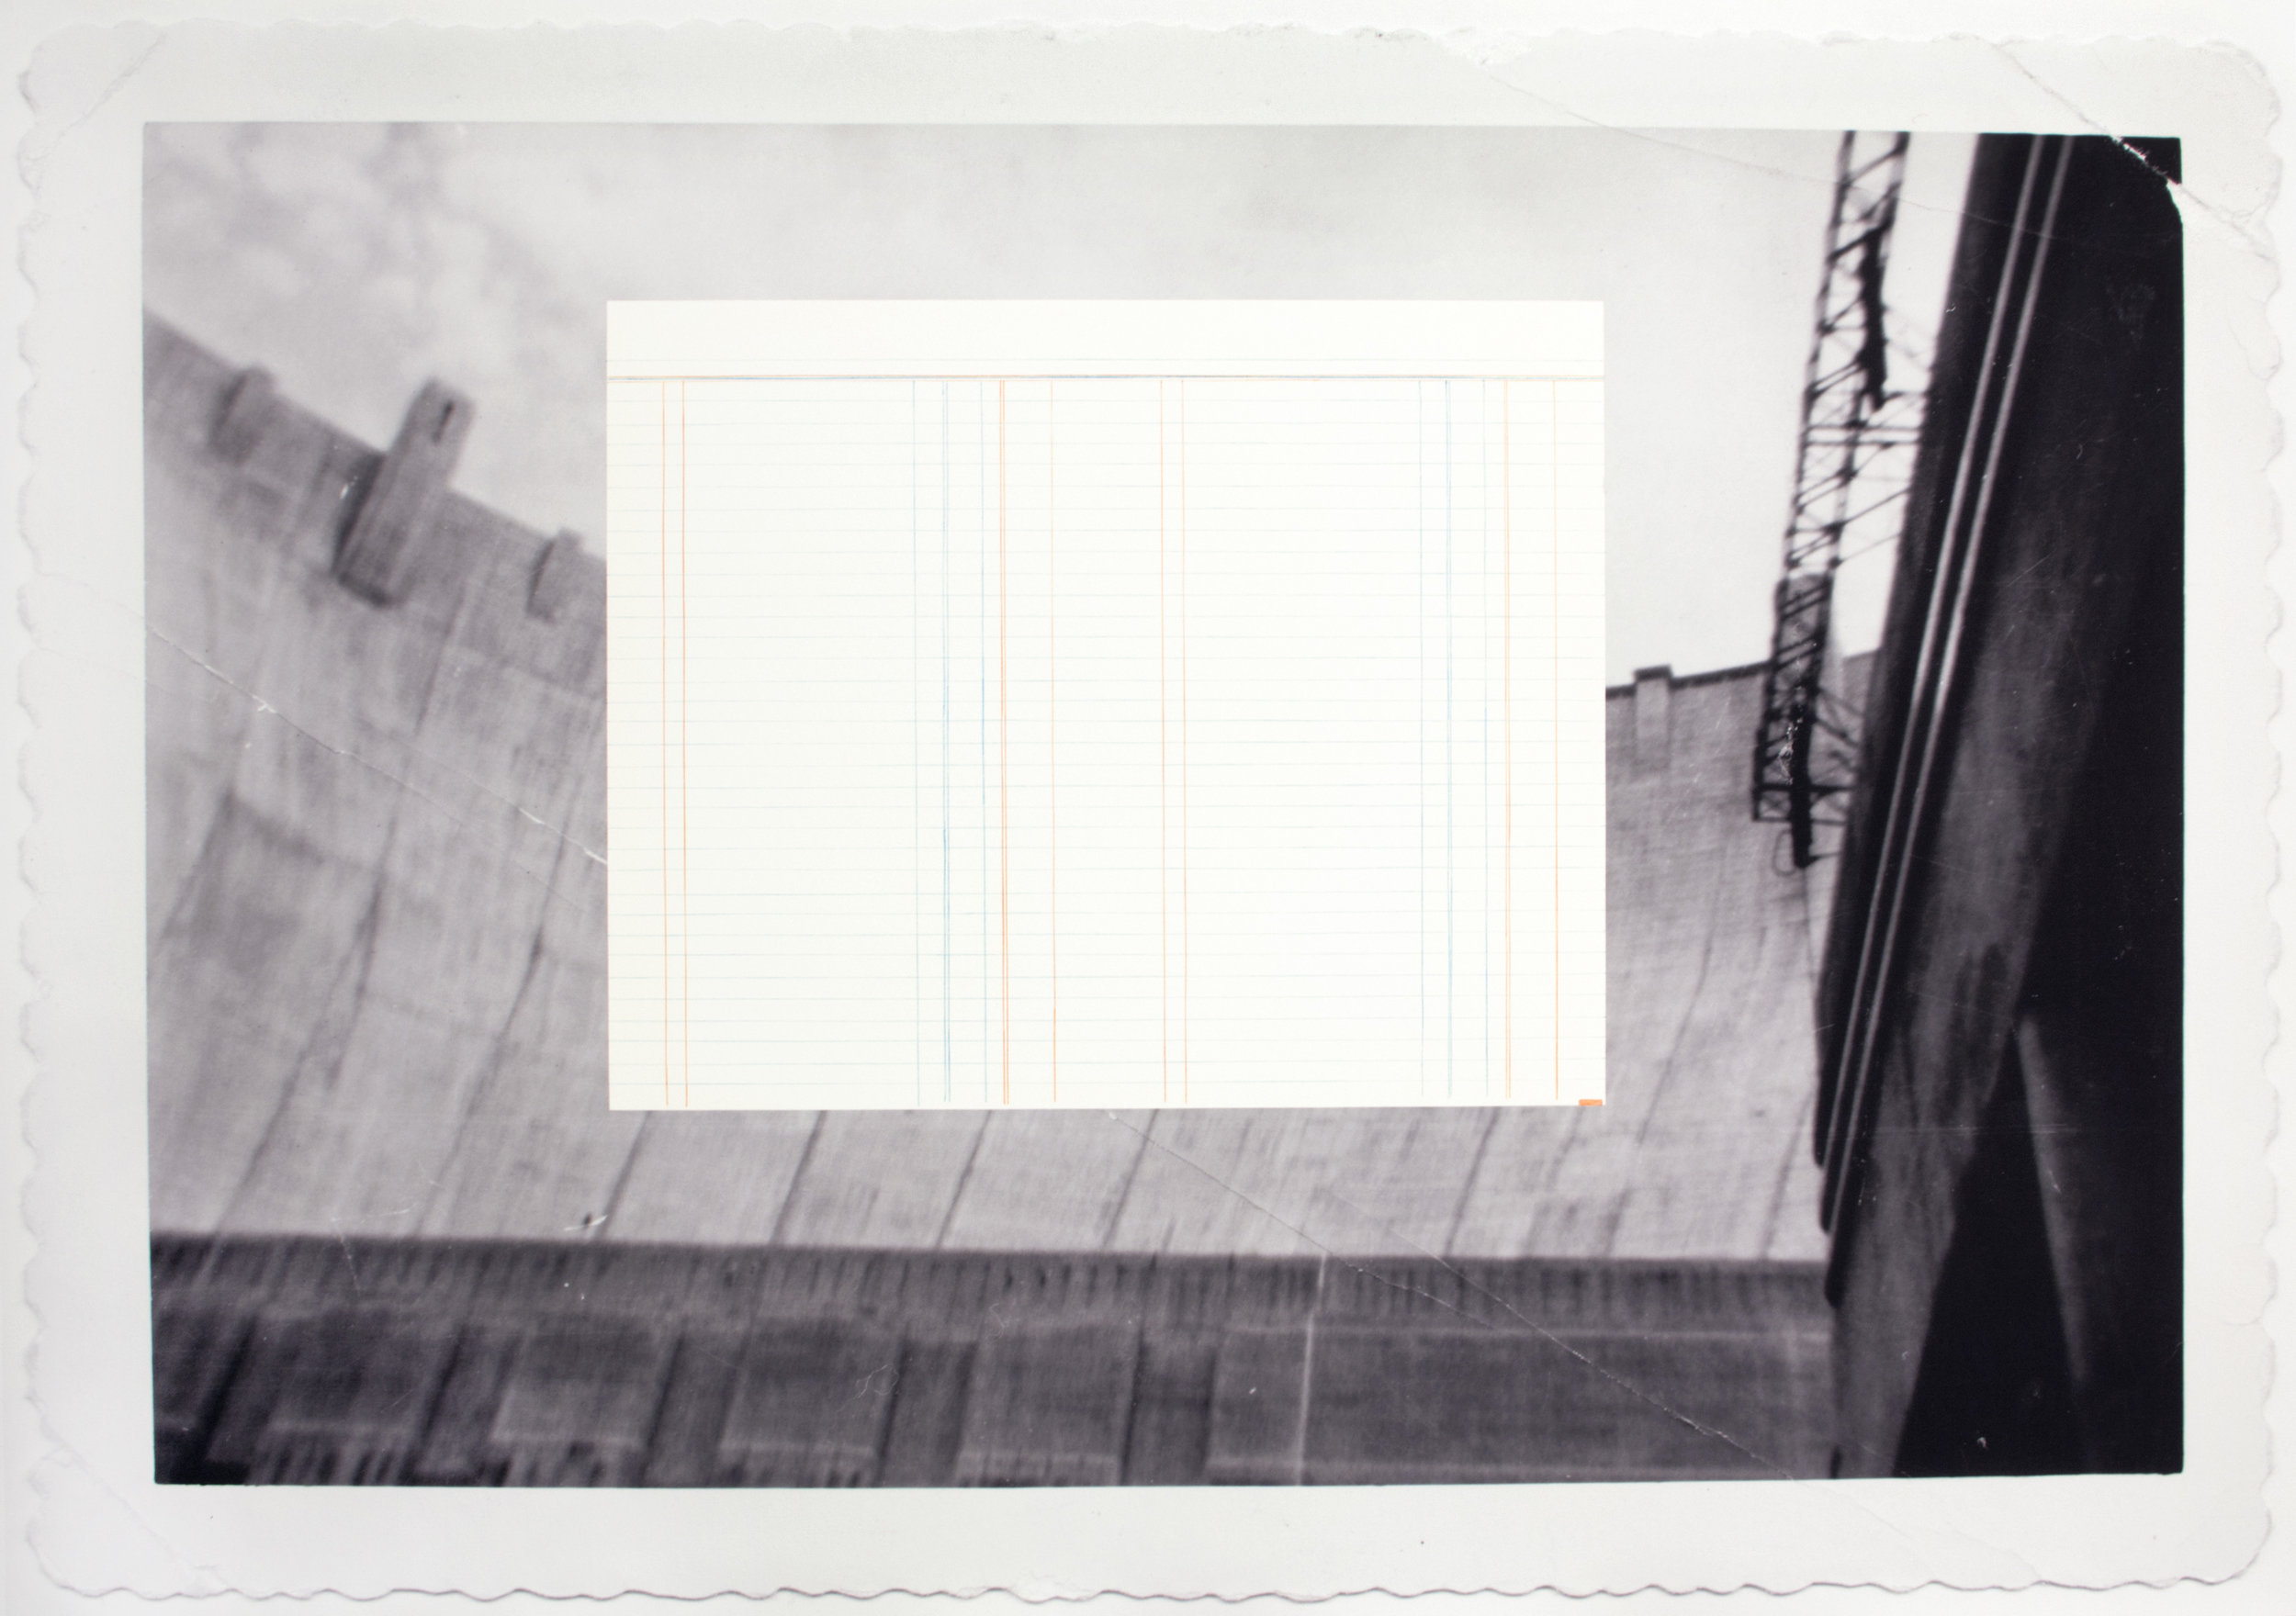 Hoover Dam  2015  Hahnamuela archival inkjet paper, pastel, pencil  34 X 24 Inches